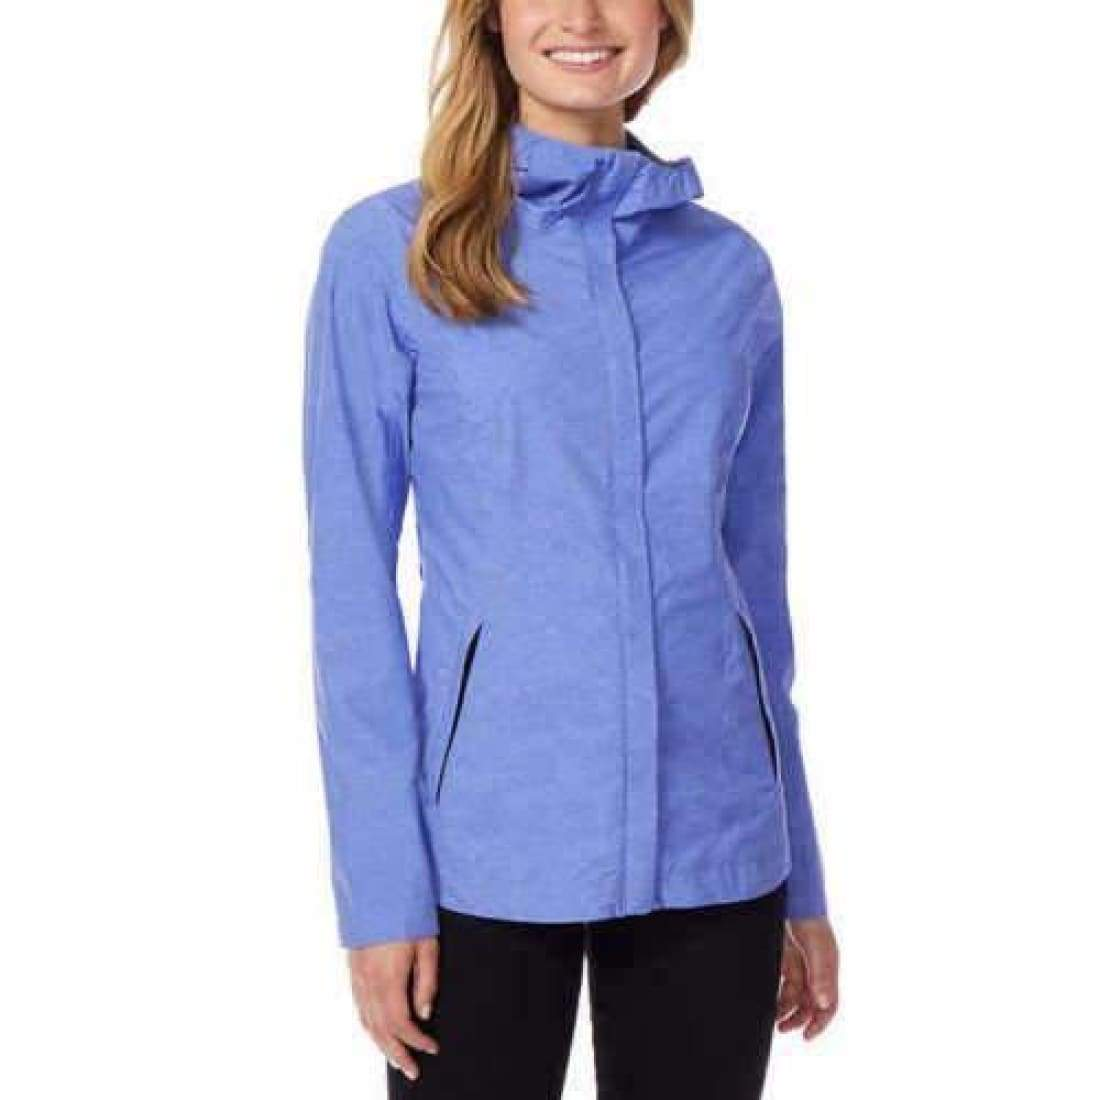 32 Degrees Womens Packable Rain Jacket M / Blue Outerwear